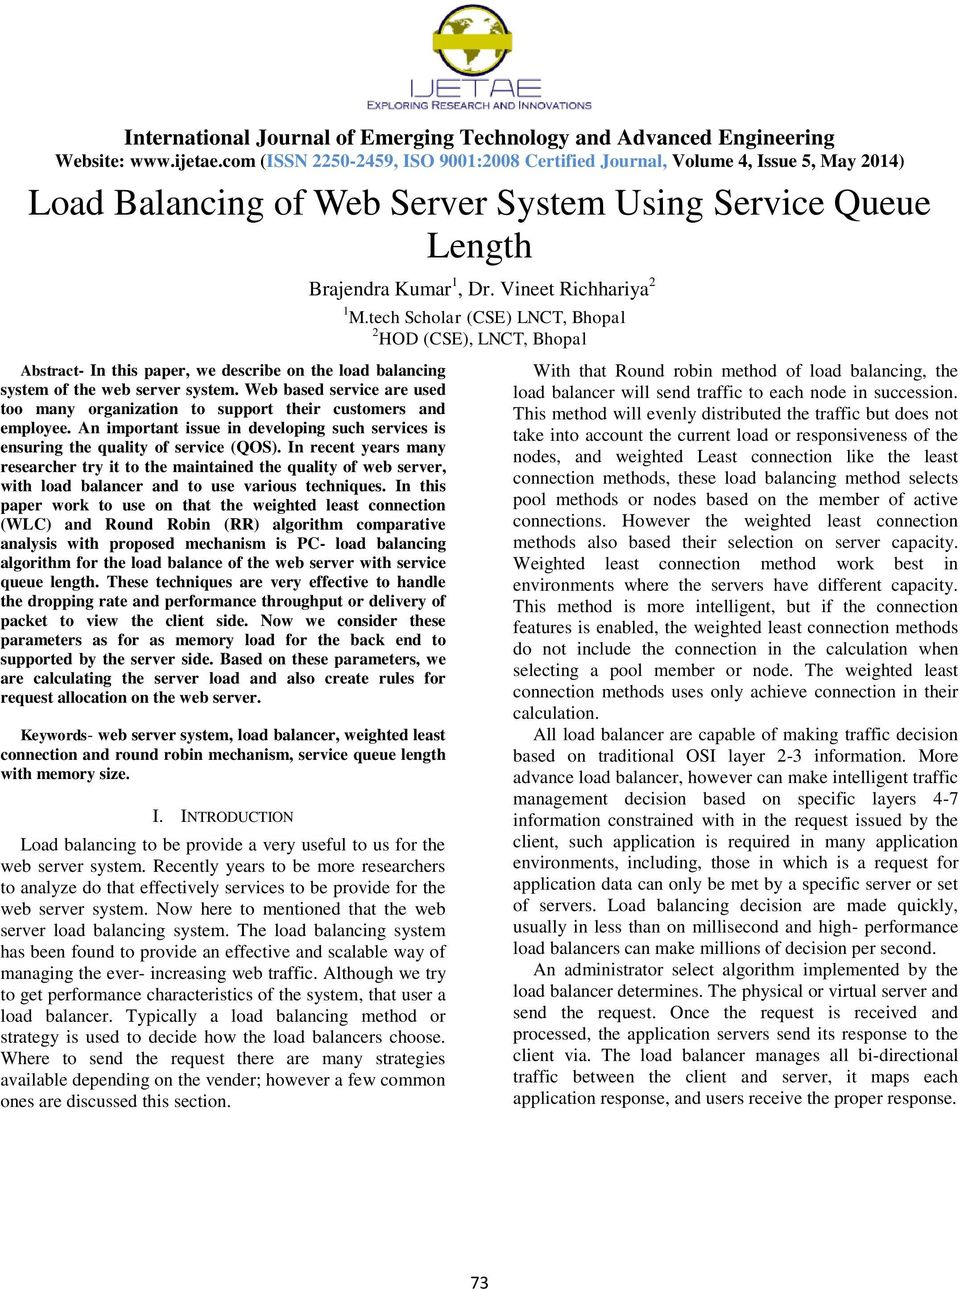 Web based service are used too many organization to support their customers and employee. An important issue in developing such services is ensuring the quality of service (QOS).